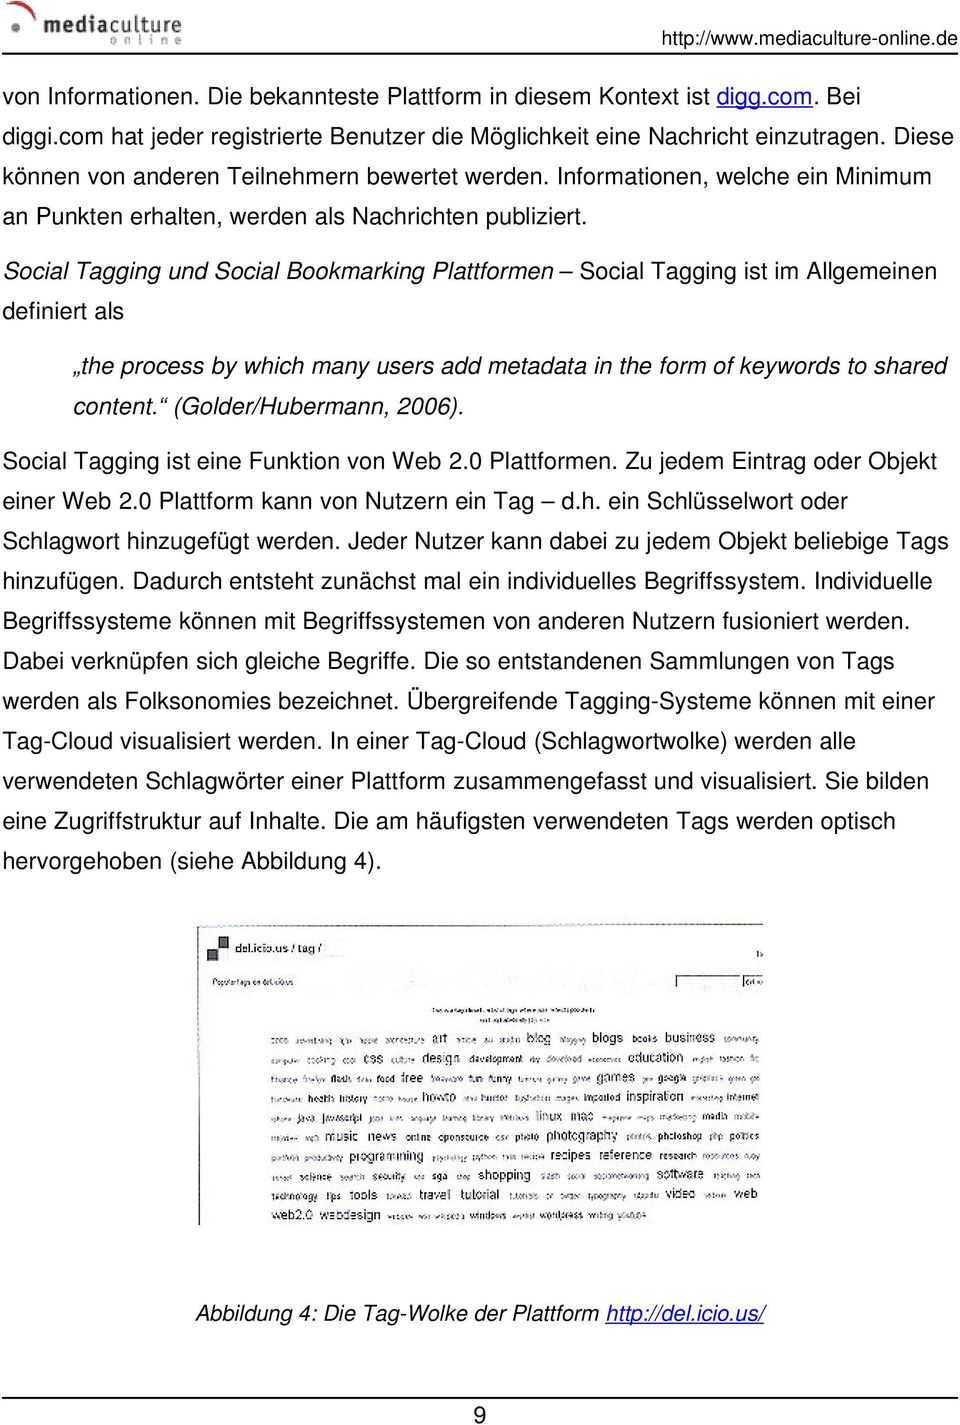 Social Tagging und Social Bookmarking Plattformen Social Tagging ist im Allgemeinen definiert als the process by which many users add metadata in the form of keywords to shared content.